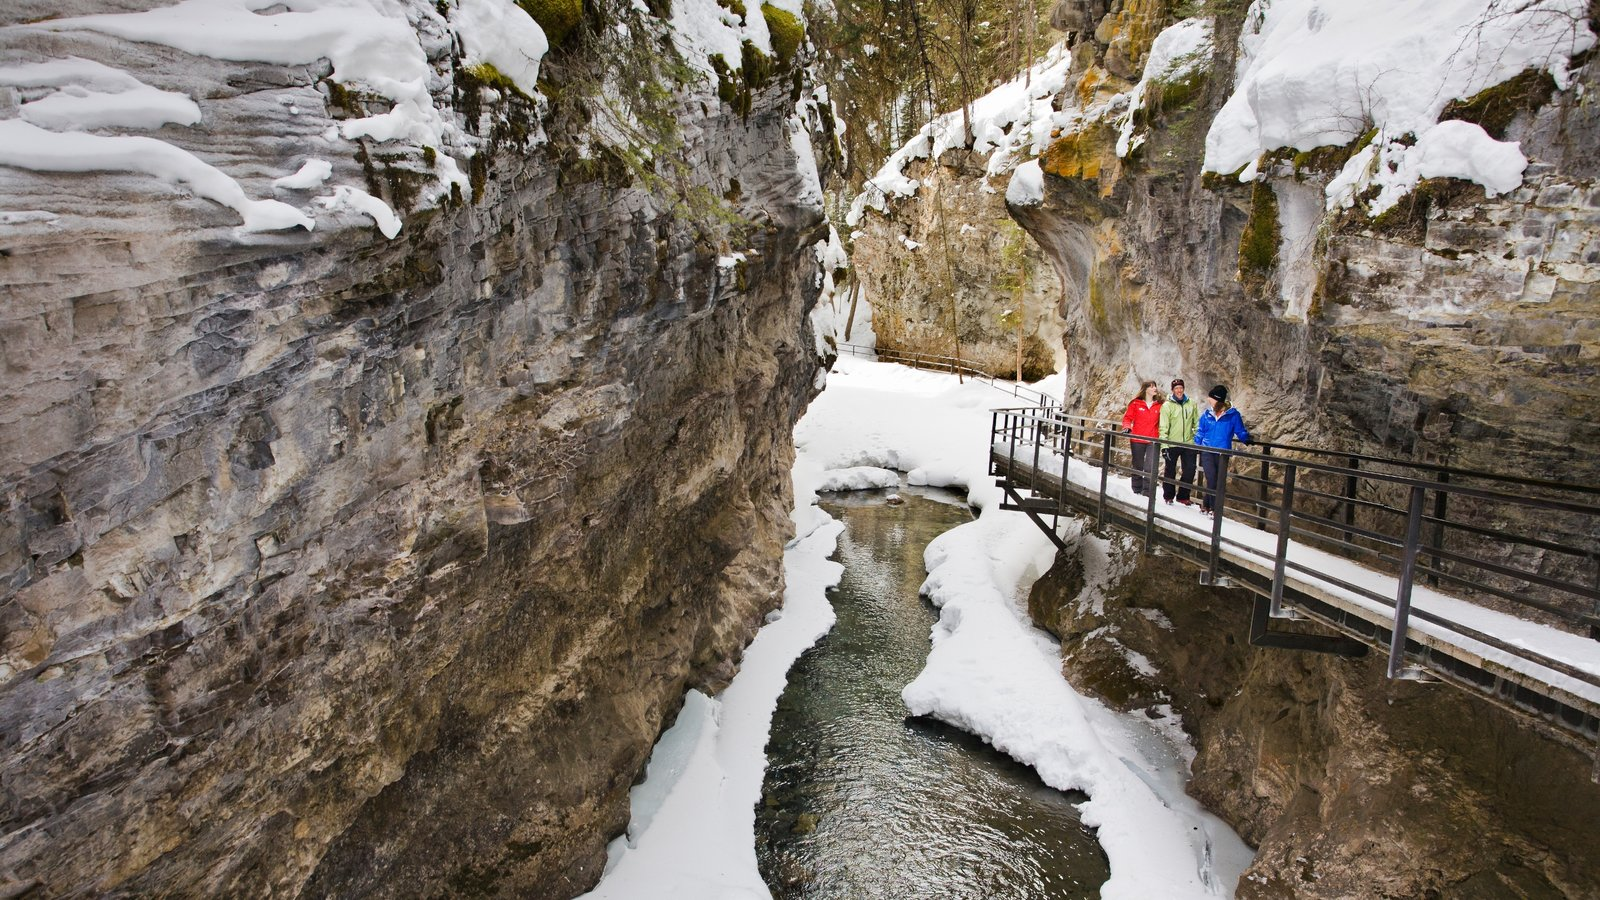 Johnston Canyon featuring a gorge or canyon, a bridge and snow